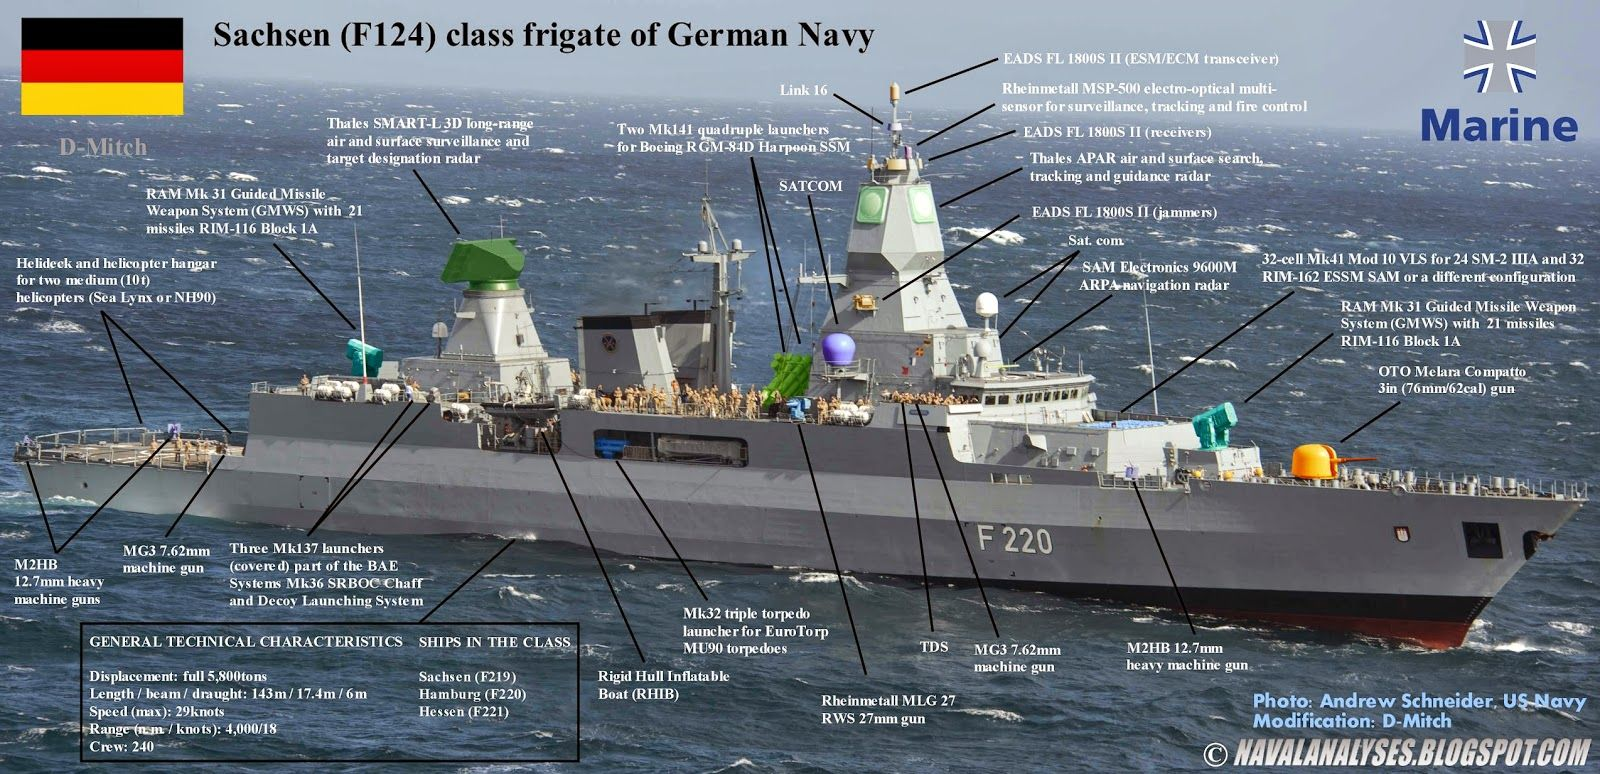 Naval Analyses Sachsen Class Frigates Of The German Navy